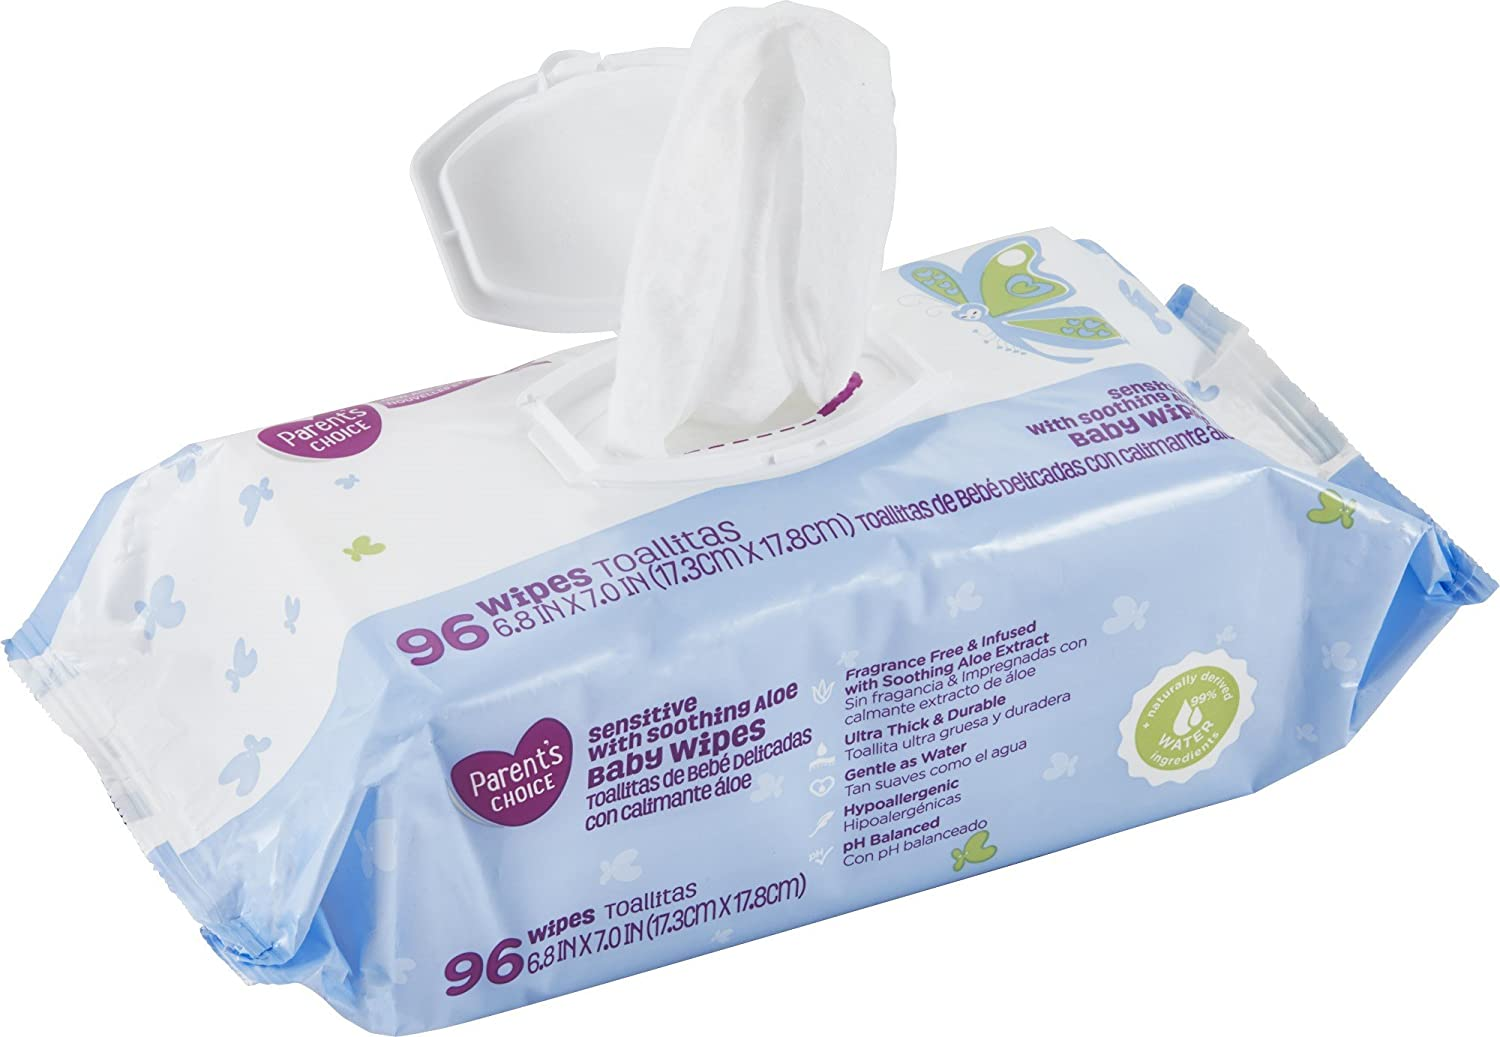 Amazon.com: Parents Choice Sensitive Aloe Baby Wipes (768 Count): Health & Personal Care